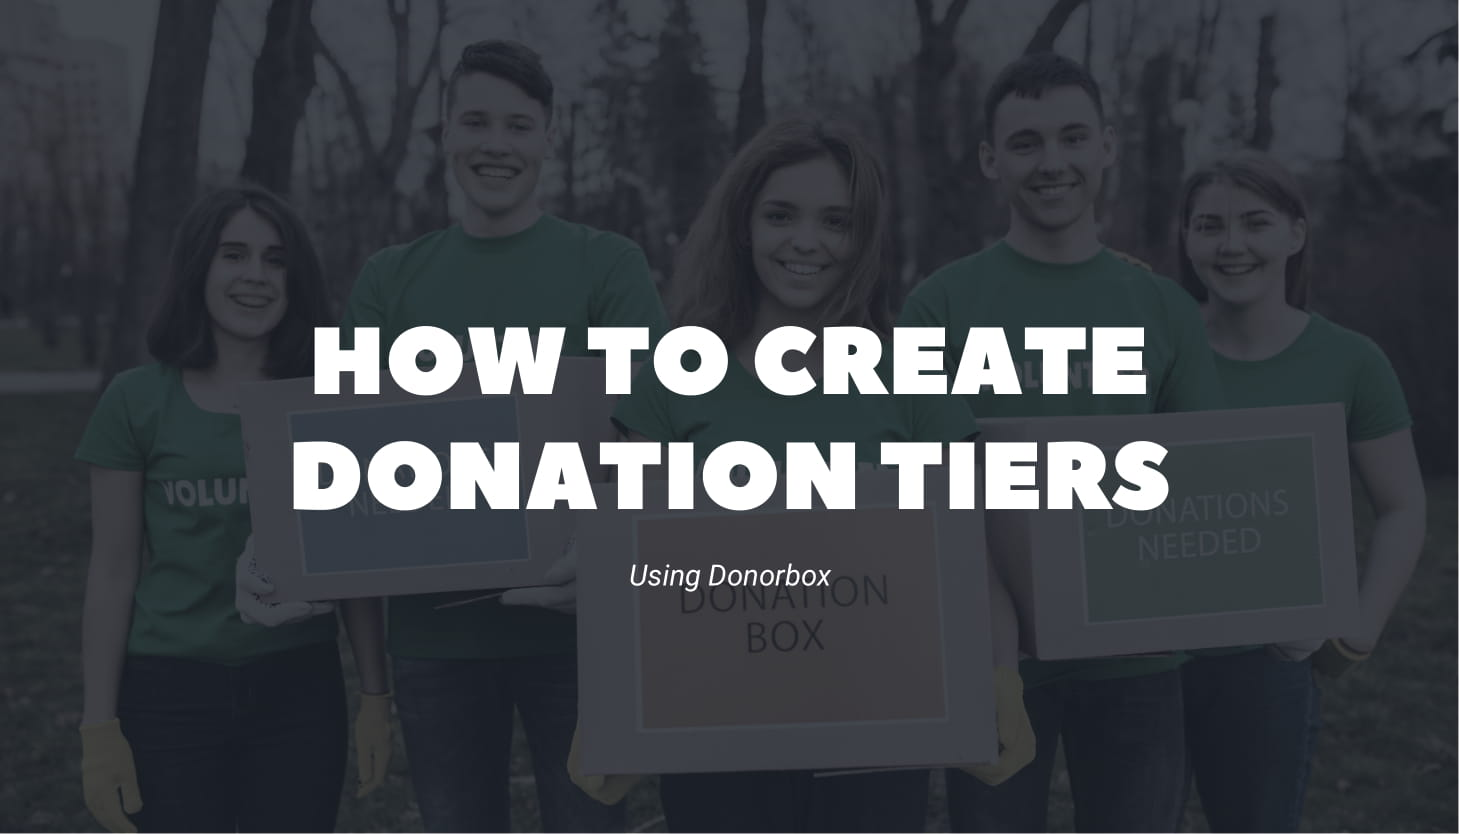 A Step-By-Step Guide to Creating Donation Tiers Using Donorbox